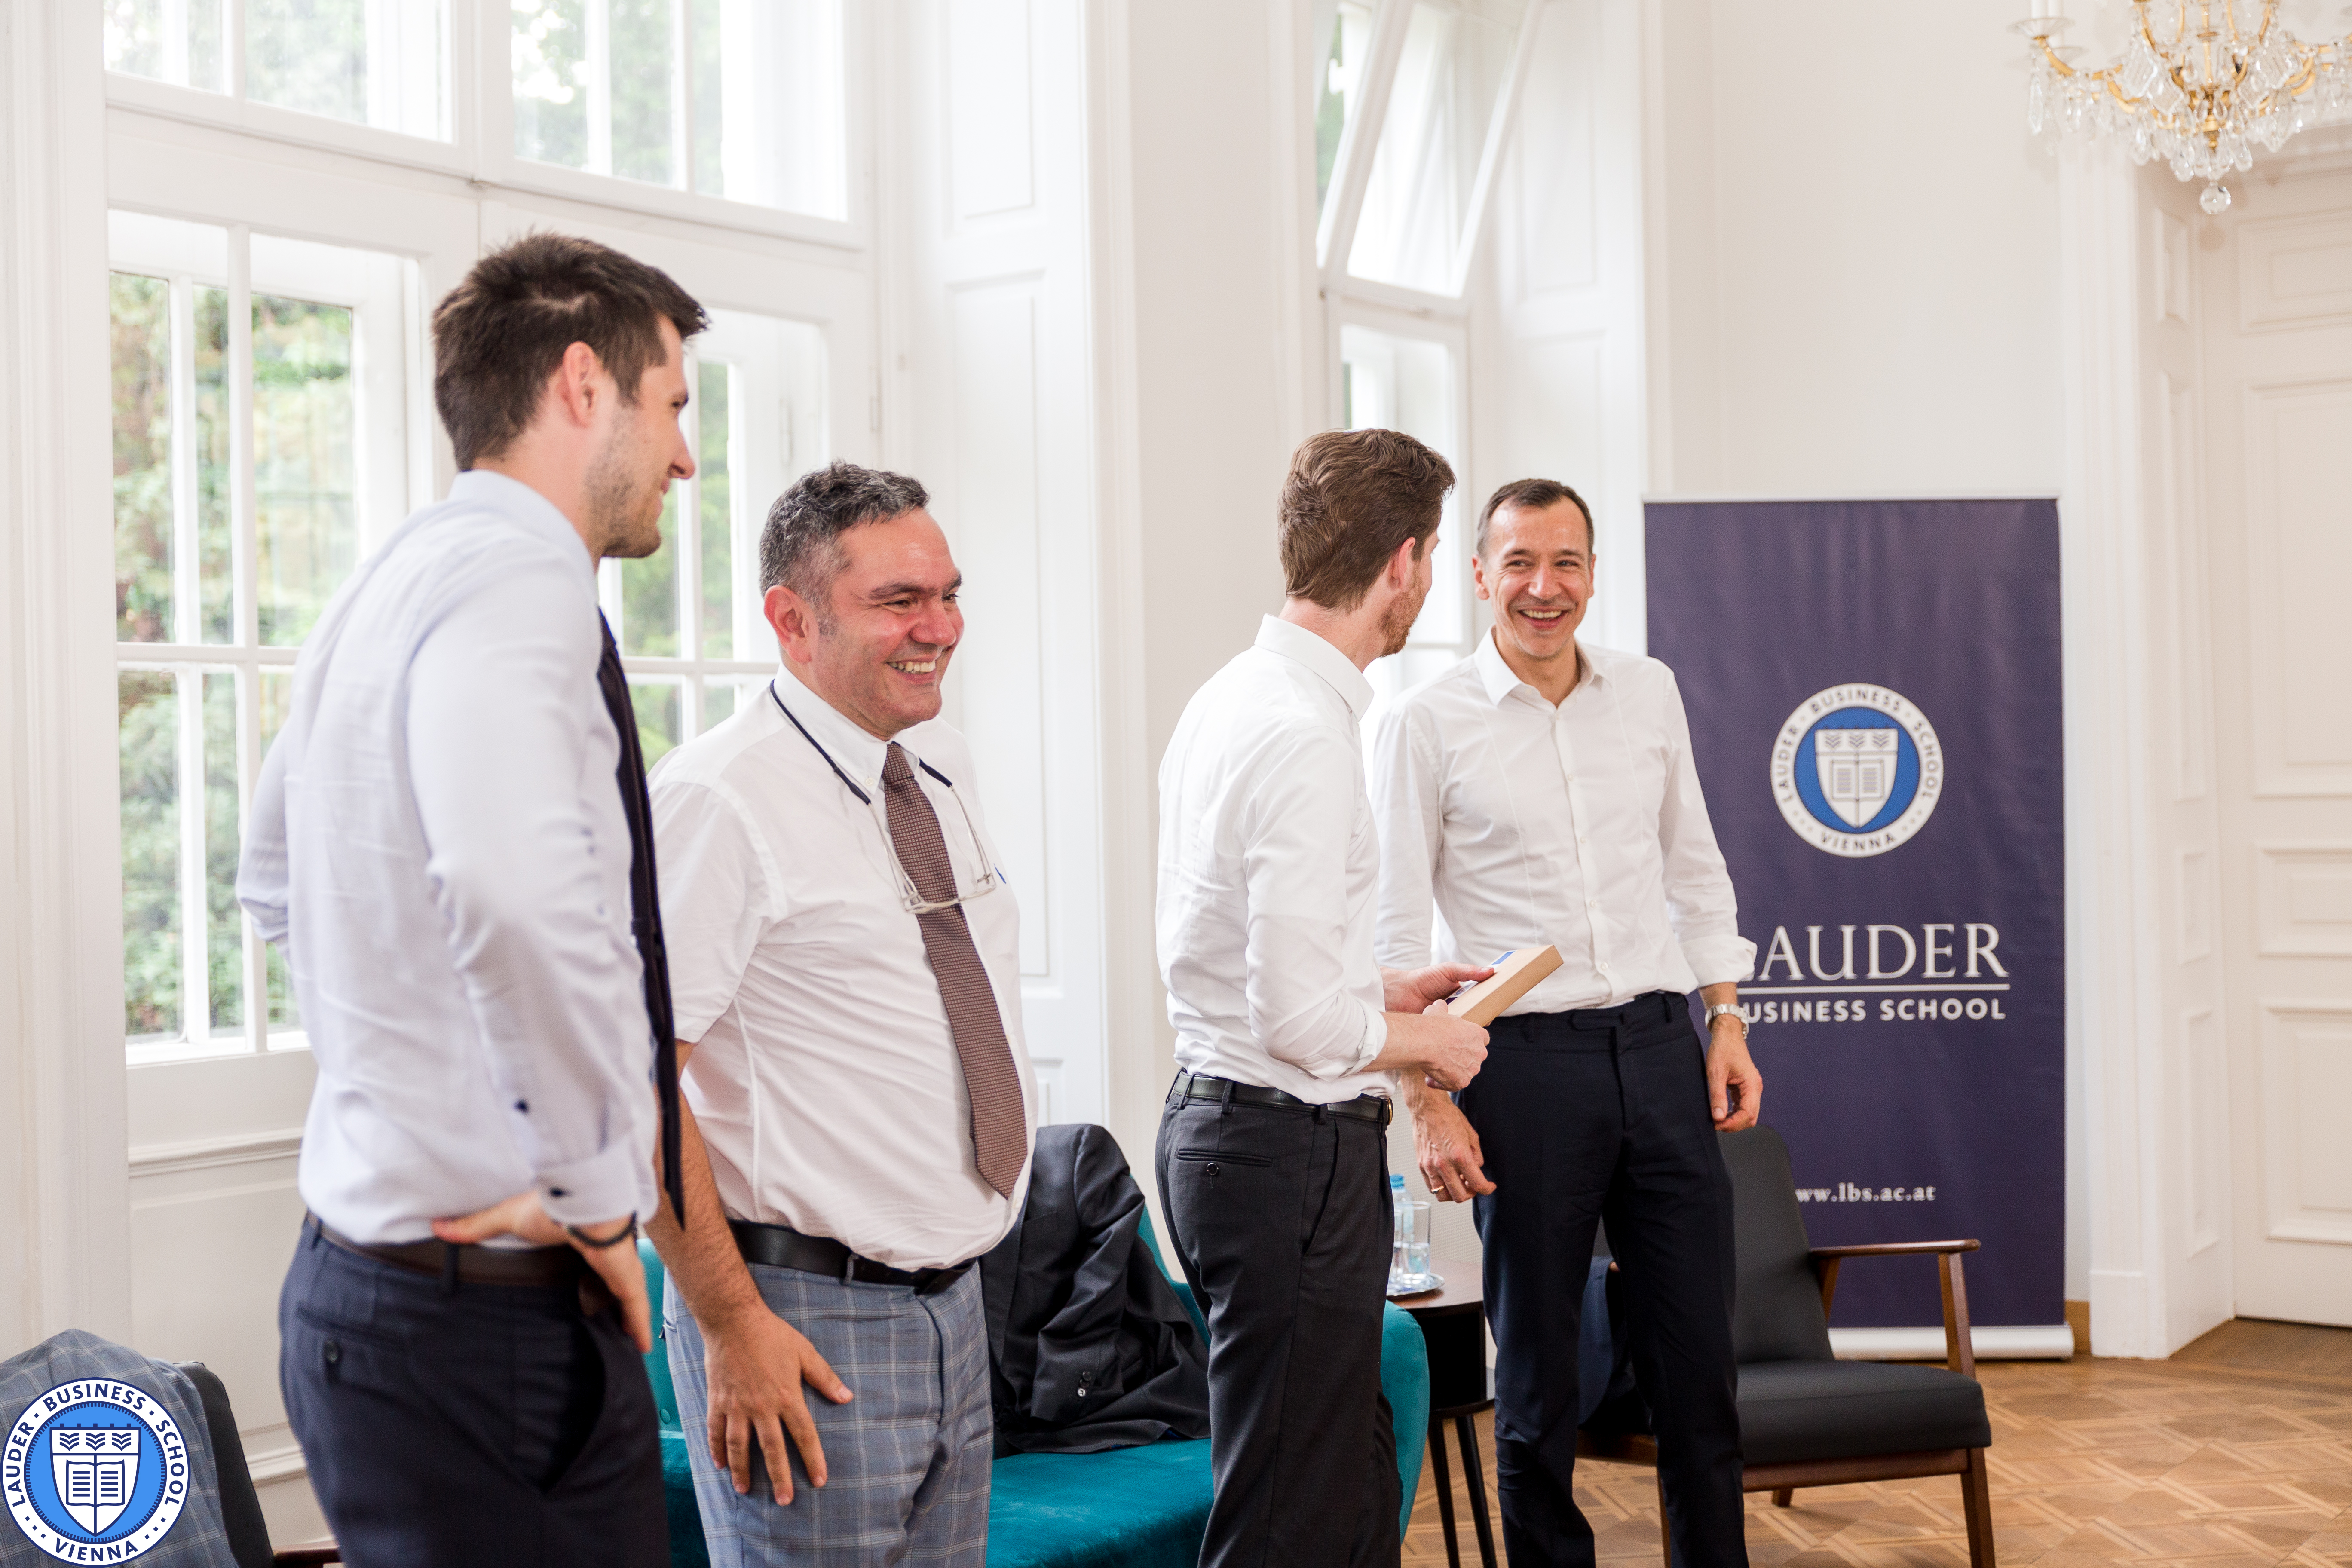 CEO of Austrian Airlines at Lauder Business School